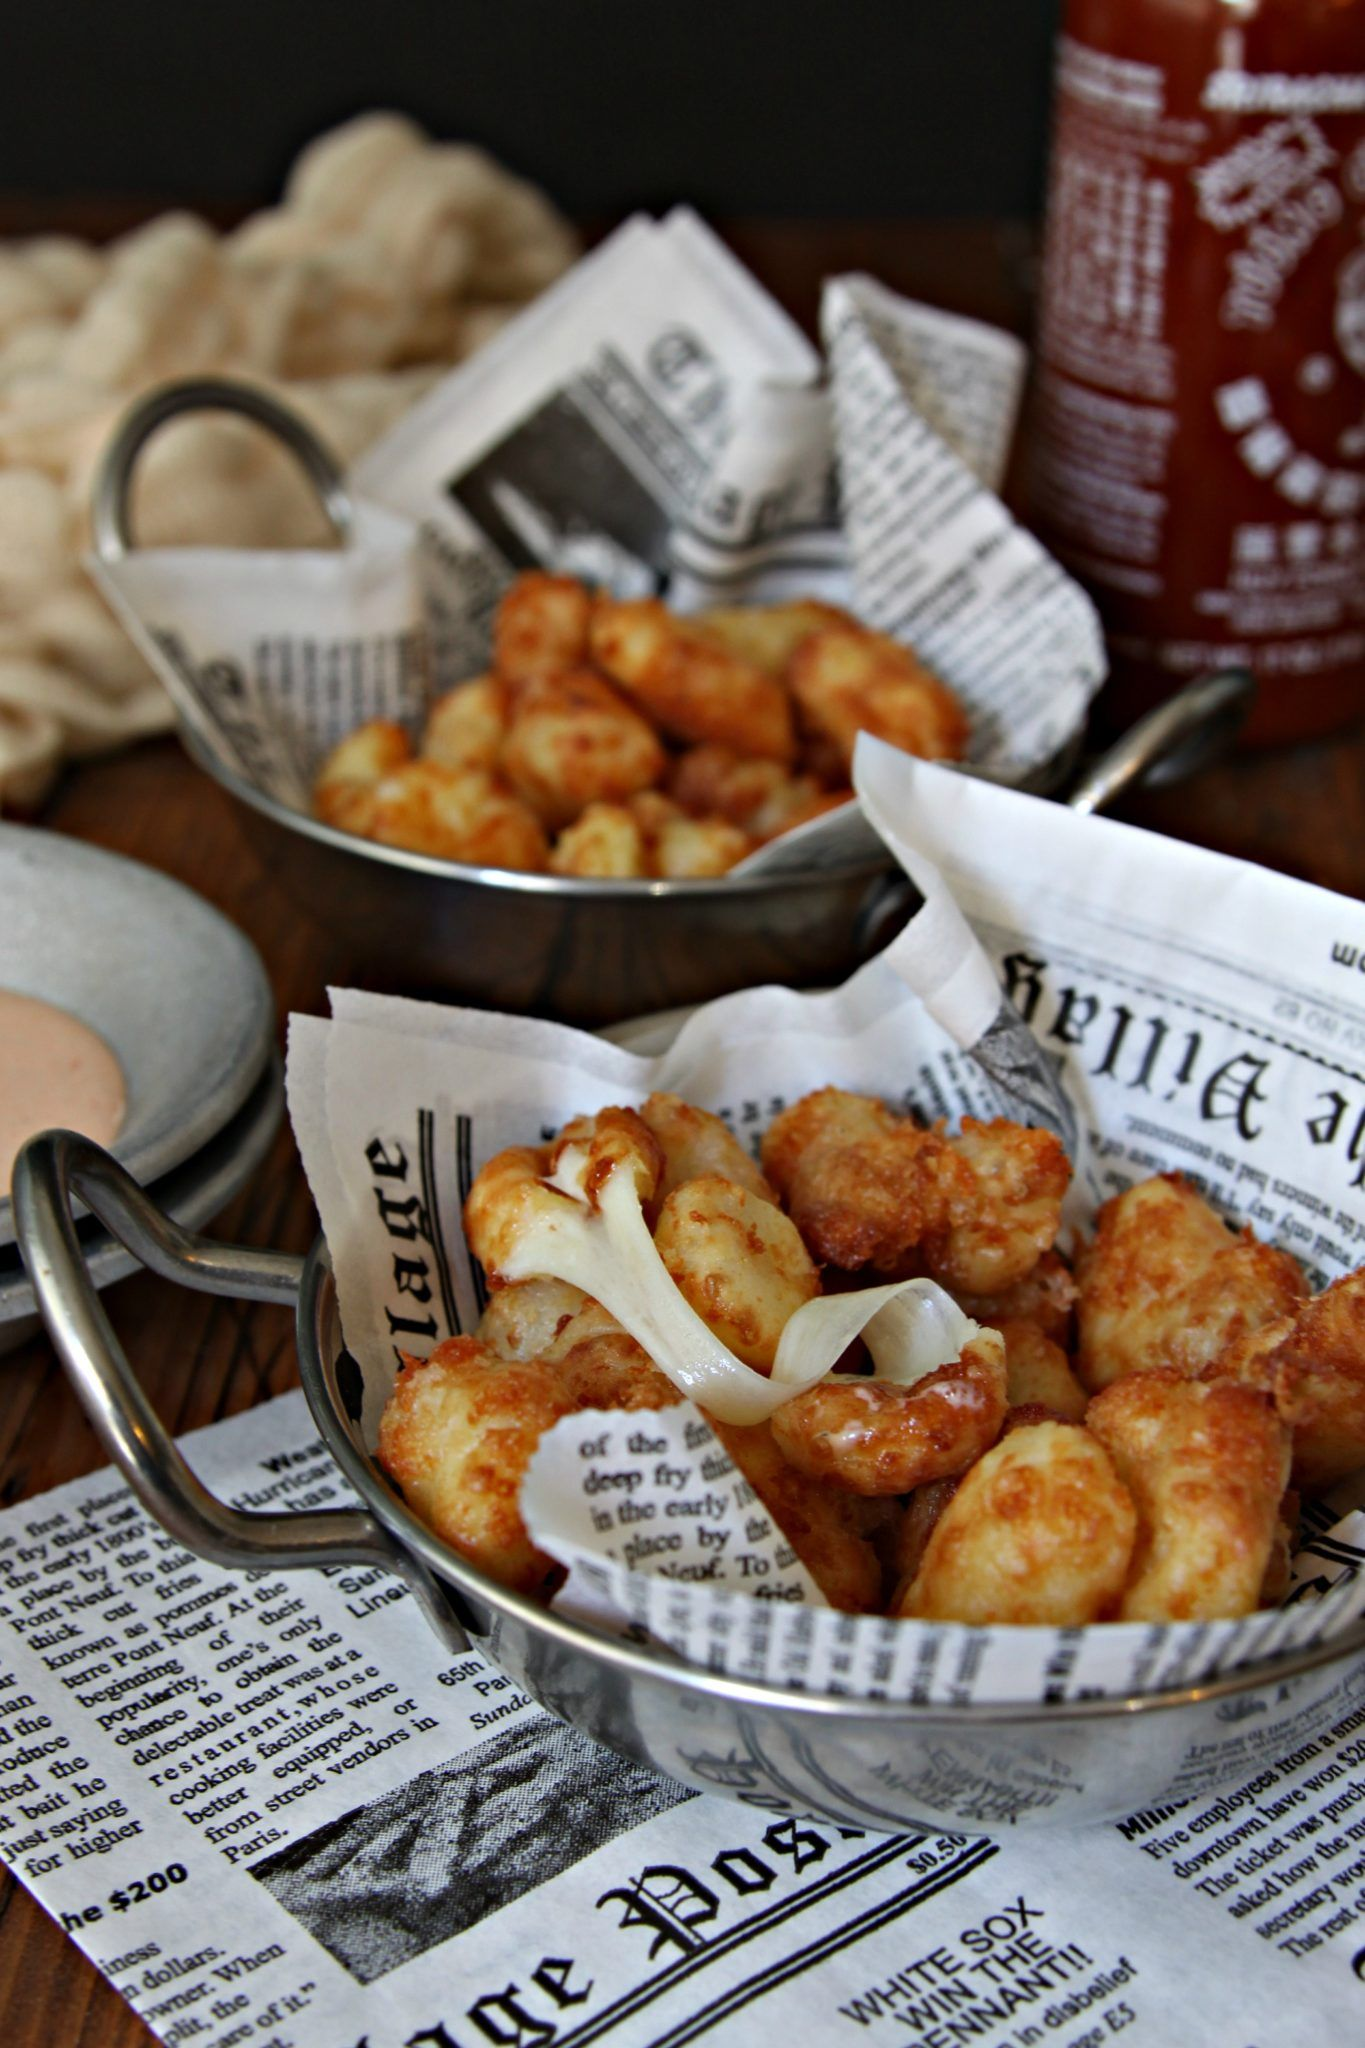 Fried cheese curds with sriracha ranch dipping sauce